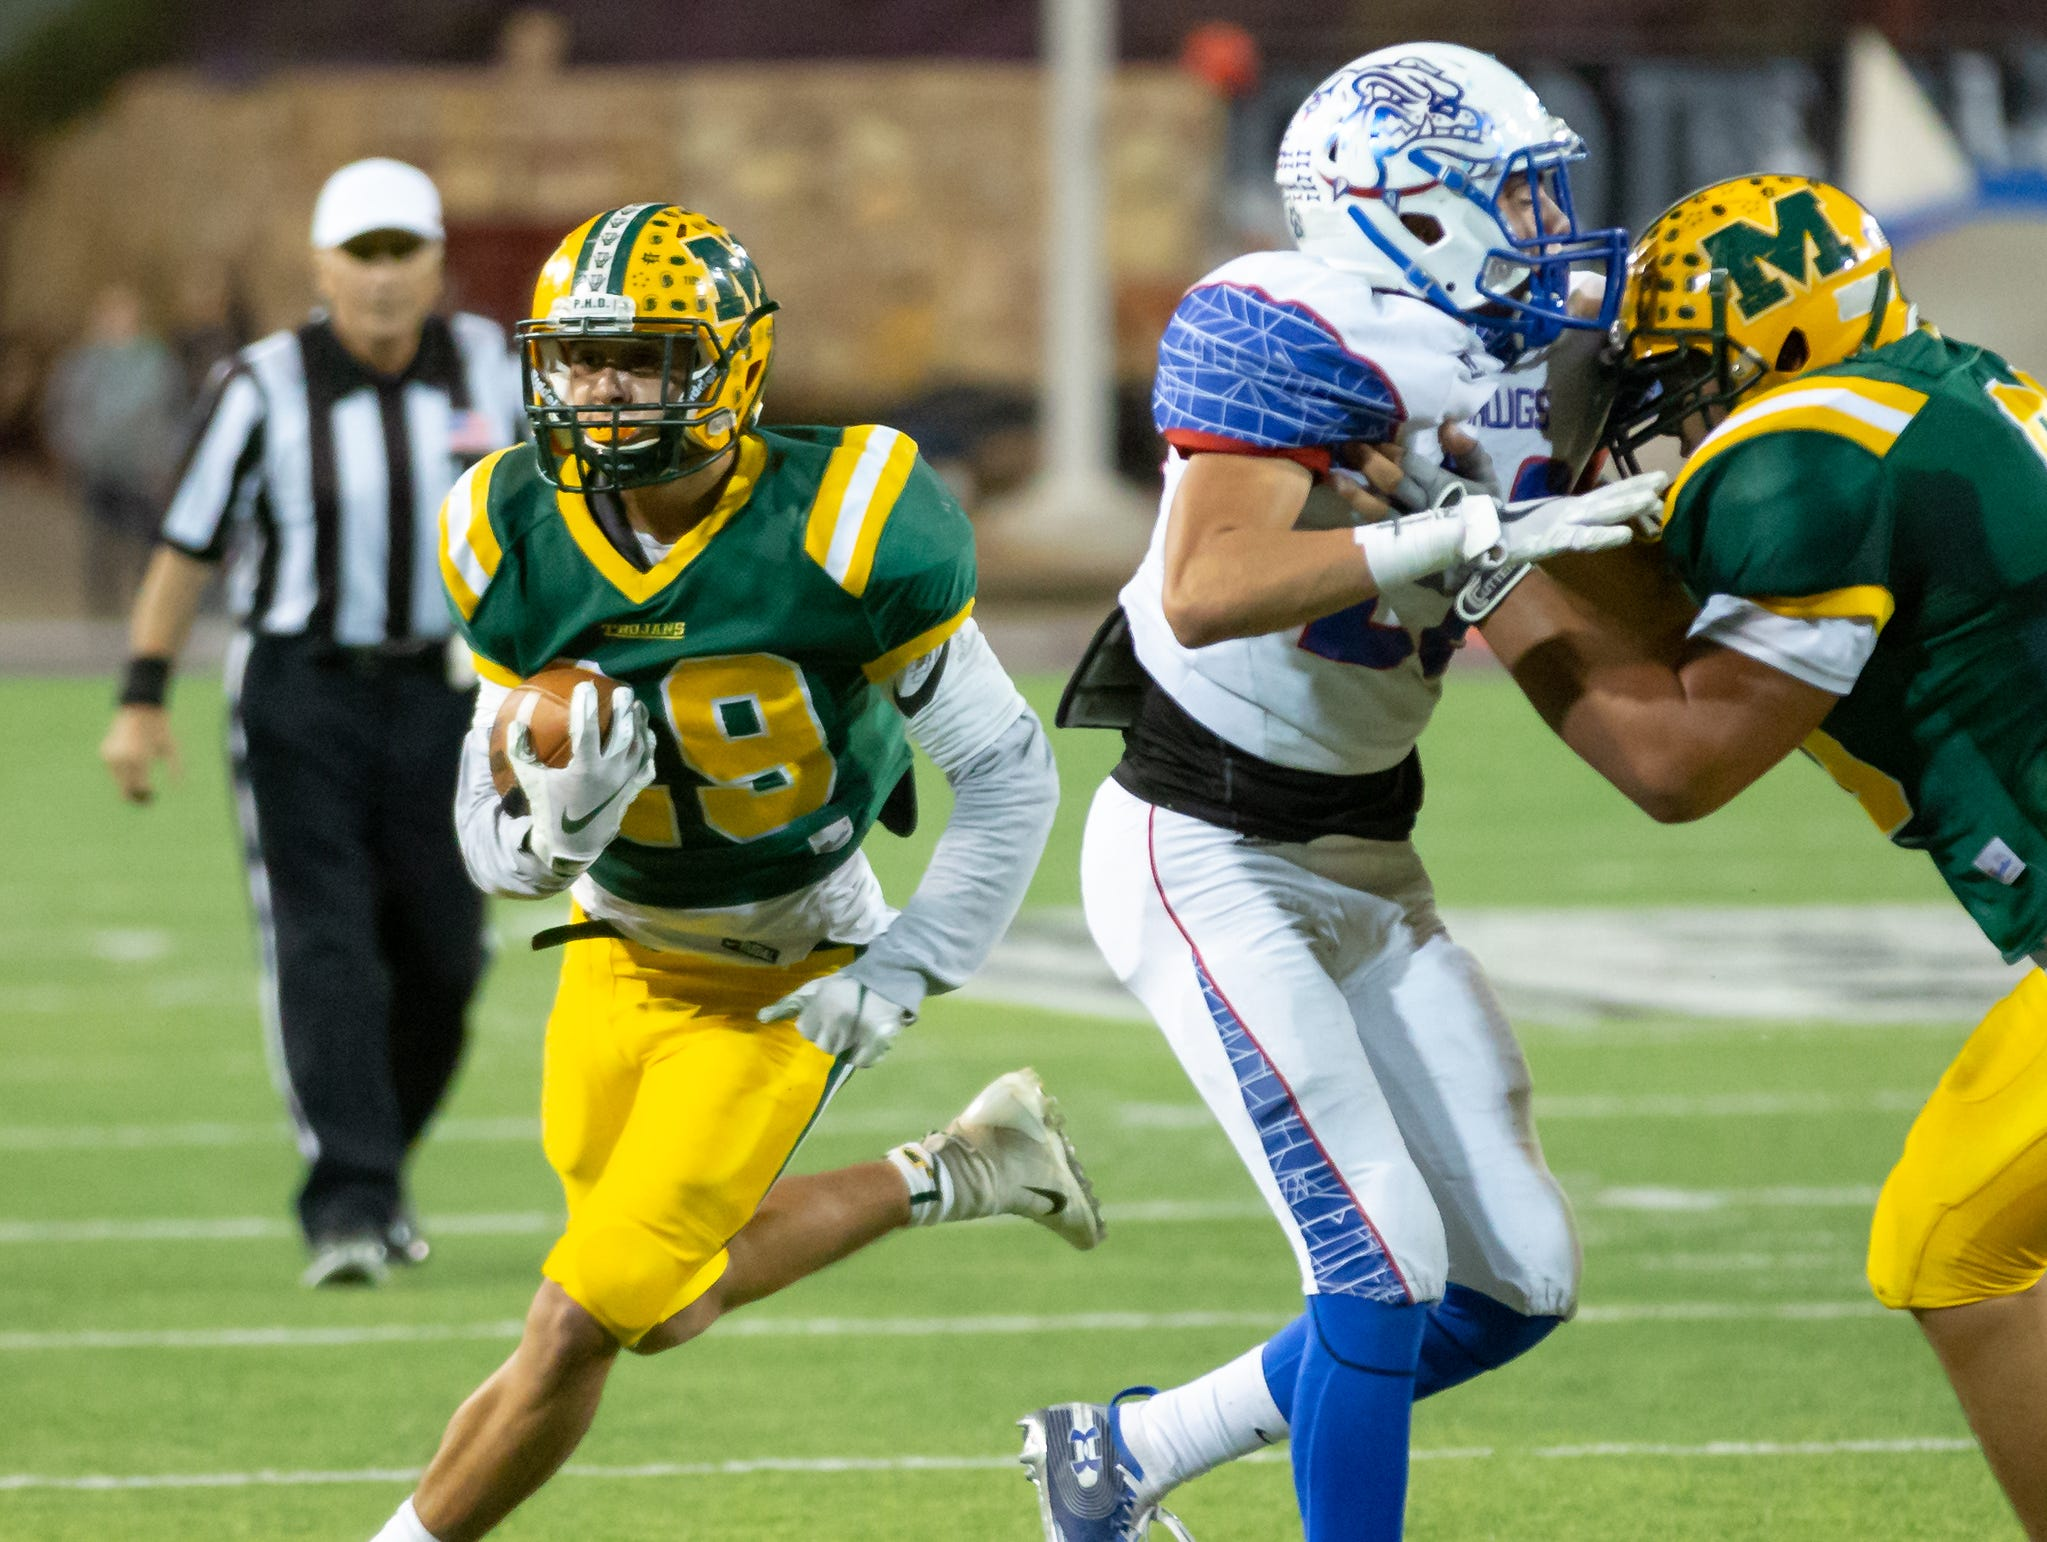 Aaron Thompson runs with the ball during the Cruces/Mayfield football game on Friday, Nov. 2, 2018, at Aggie Memorial Stadium.